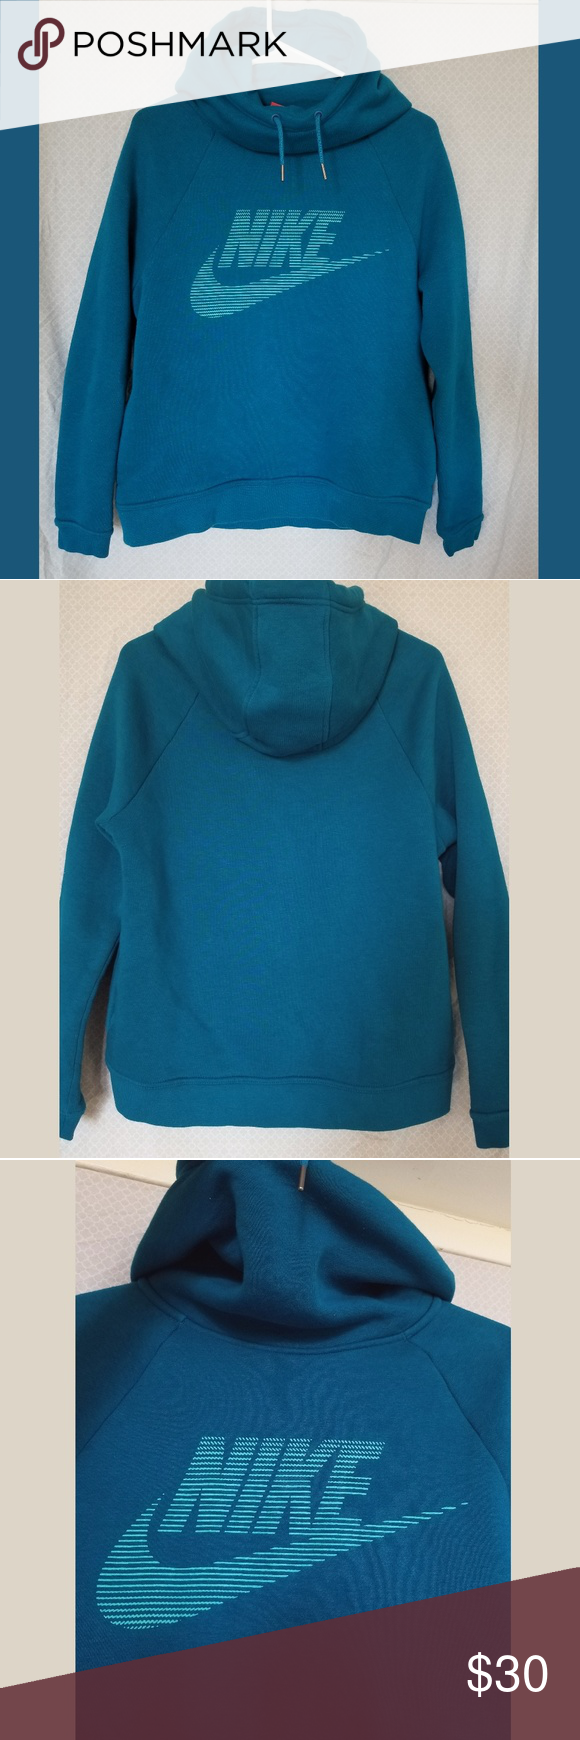 Blue Aqua Nike Hoodie Size Small Good Condition Only Worn A Few Times Inside Is Lined With Soft Warm Material Pockets O Nike Hoodie Clothes Design Hoodies [ 1740 x 580 Pixel ]